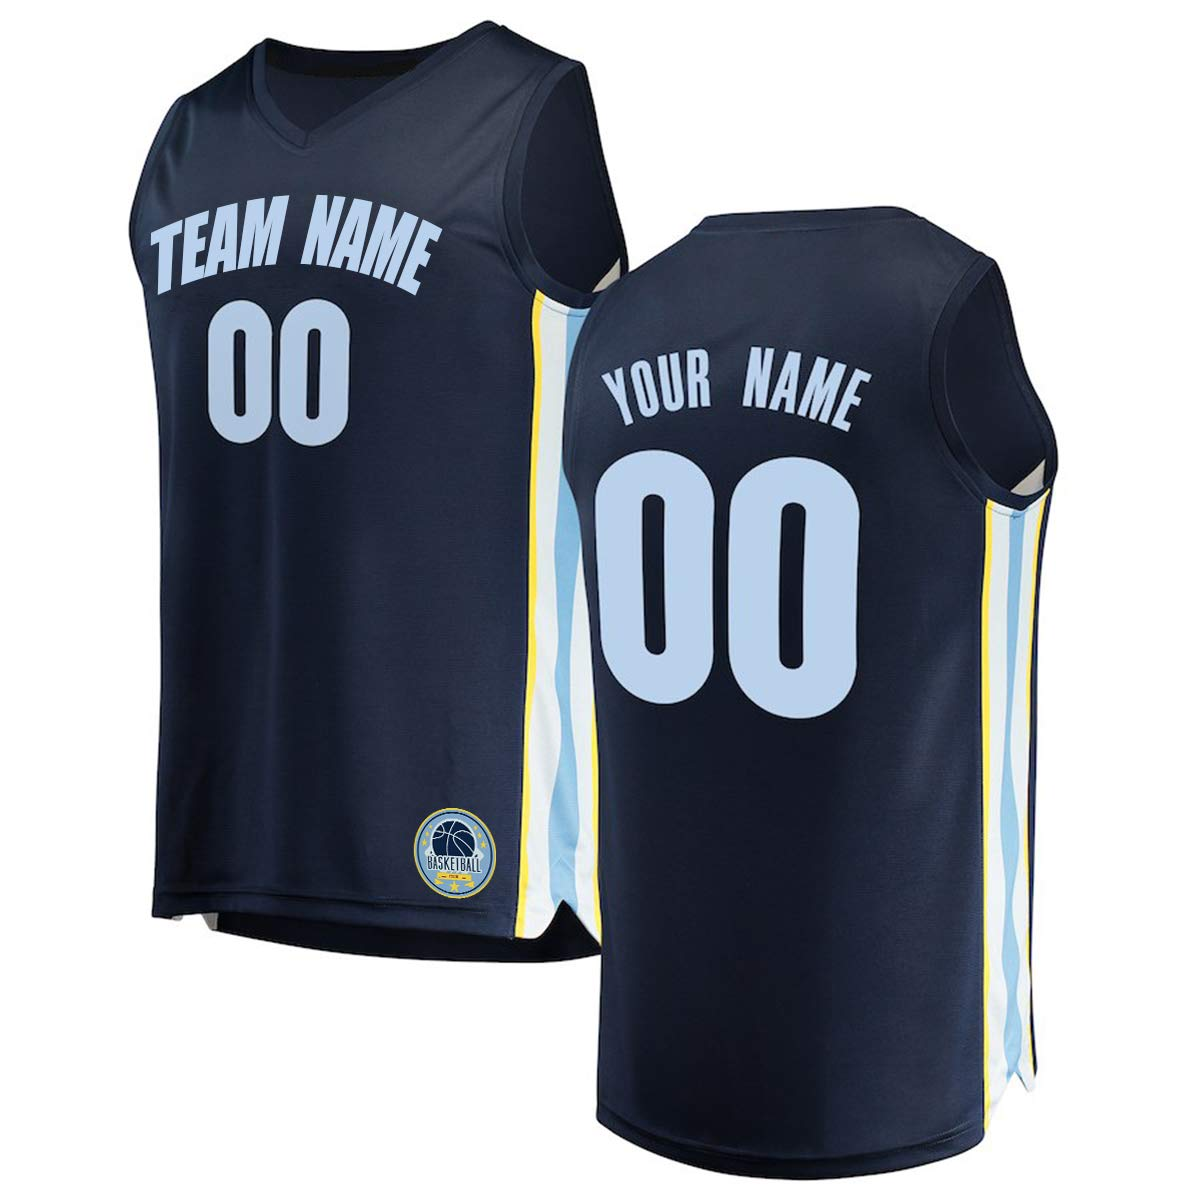 54394dfae Amazon.com : KAITE Custom Memphis Basketball Jersey, Personalized Tank Tops  Embroidered Your Name Number and Team Name : Sports & Outdoors